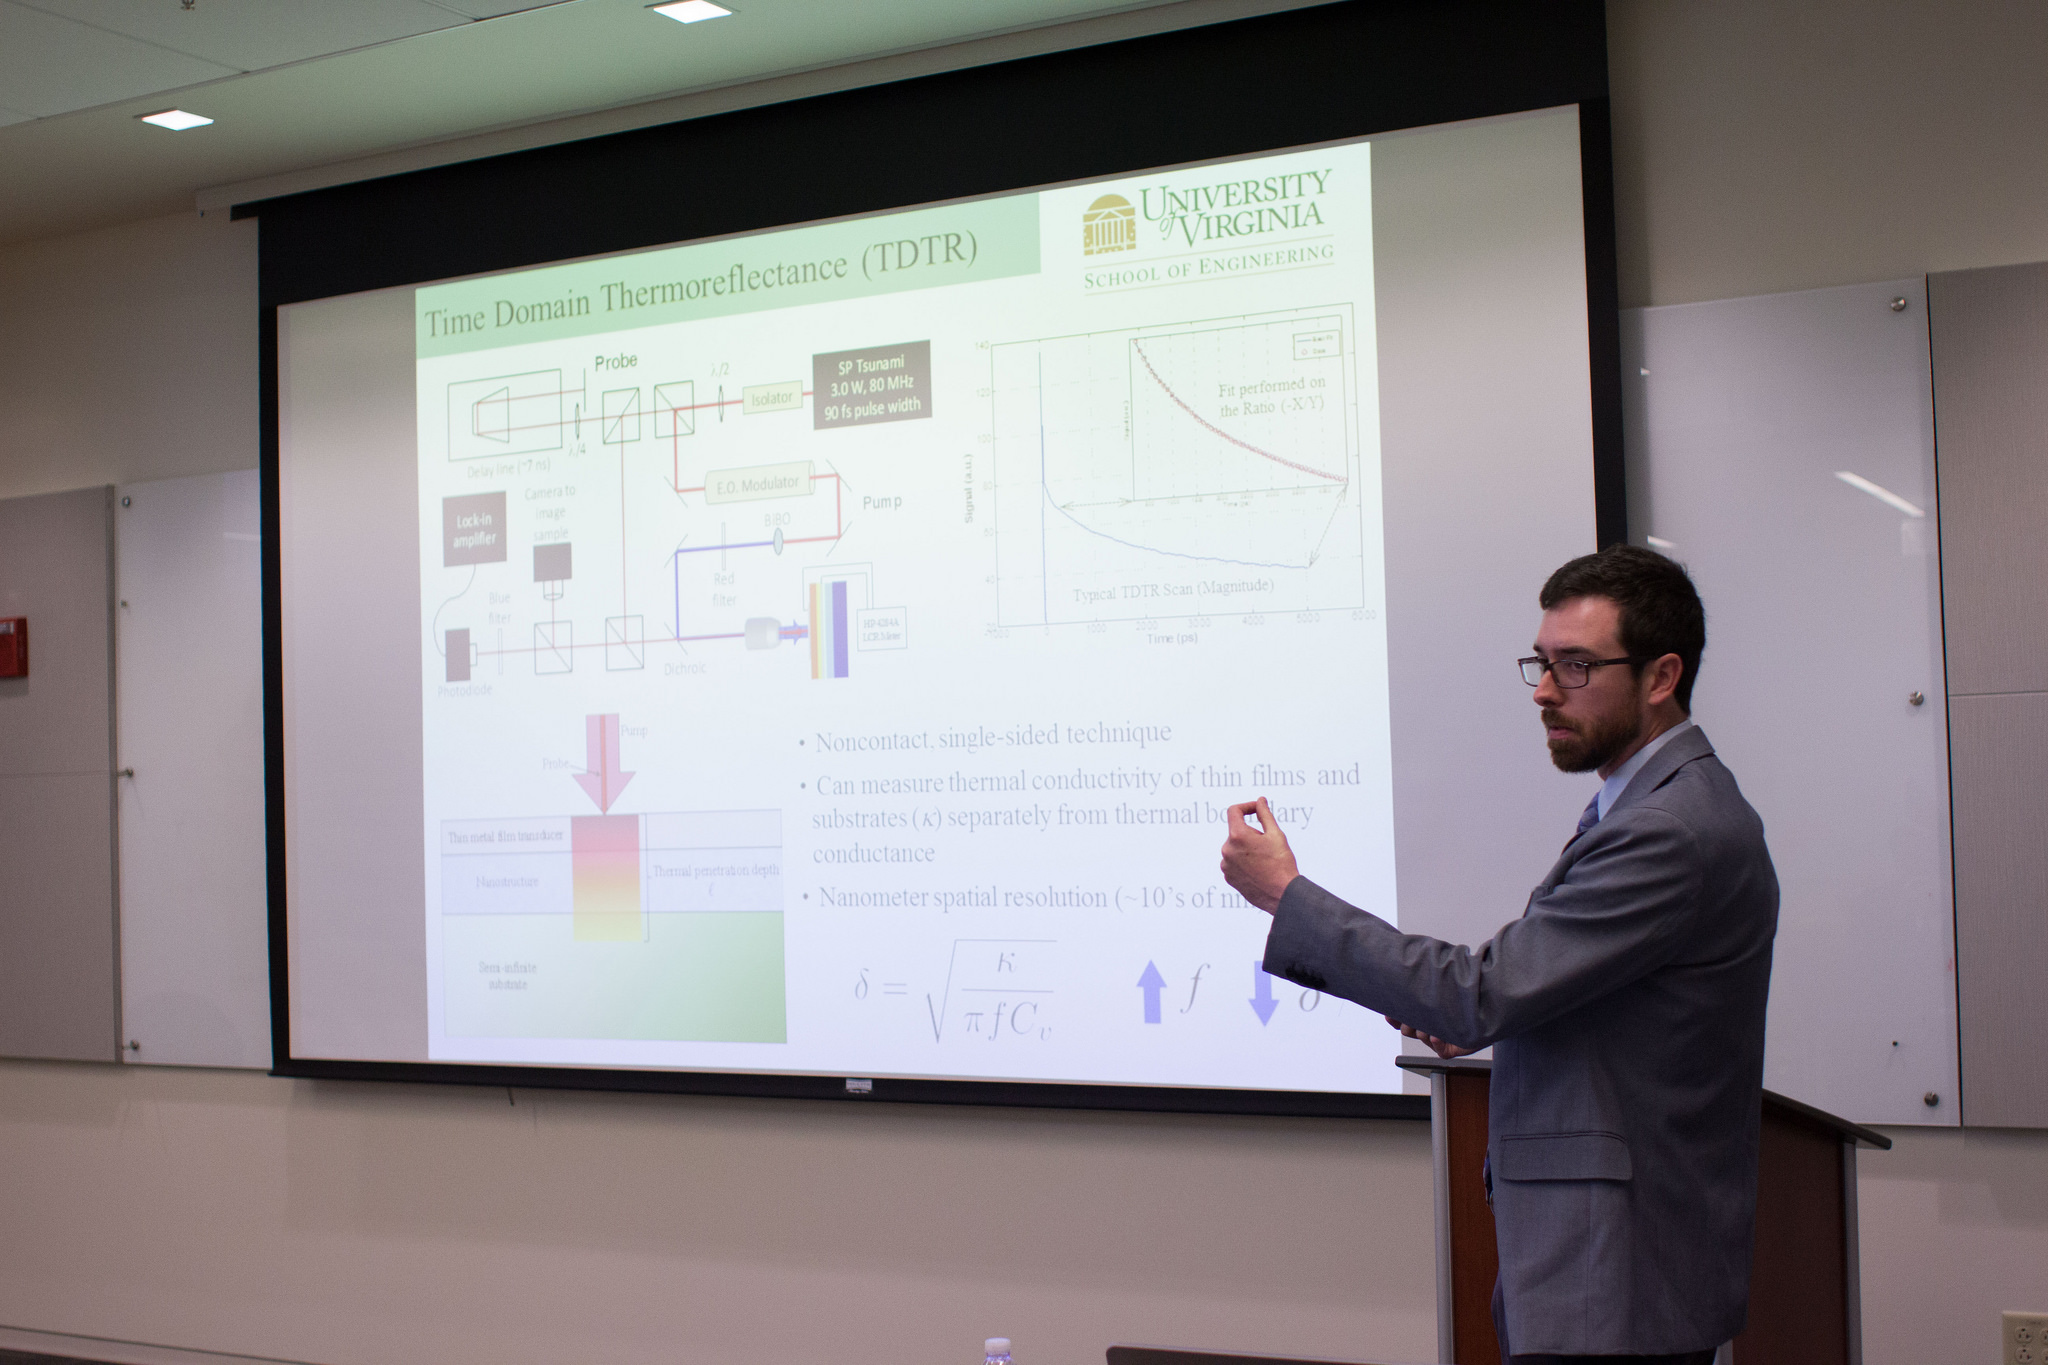 Presentation on thermal switching in bilayer PZT devices at the Virginia Space Grant Consortium (VSGC) research conference held at Langley Air Force Base on April 17th, 2015.